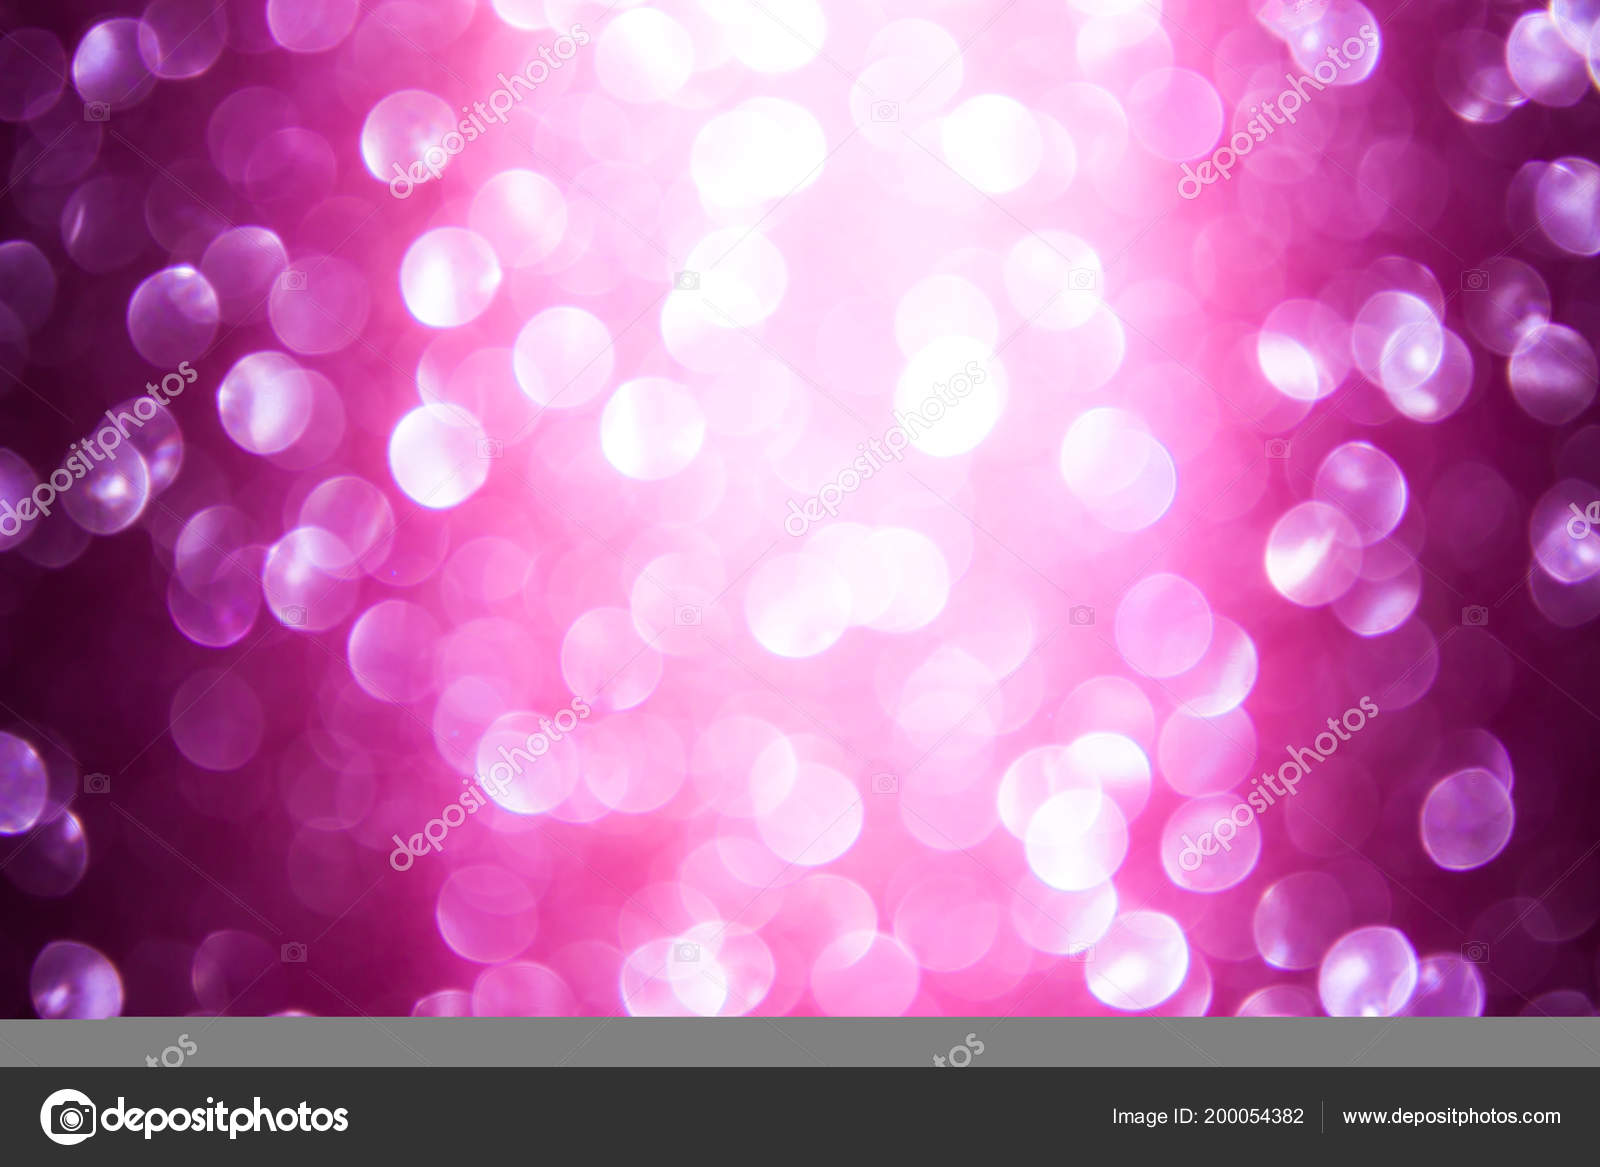 Pink Blur Abstract Background Bokeh Christmas Blurred Beautiful Shiny Lights Photo By Ooddysmile